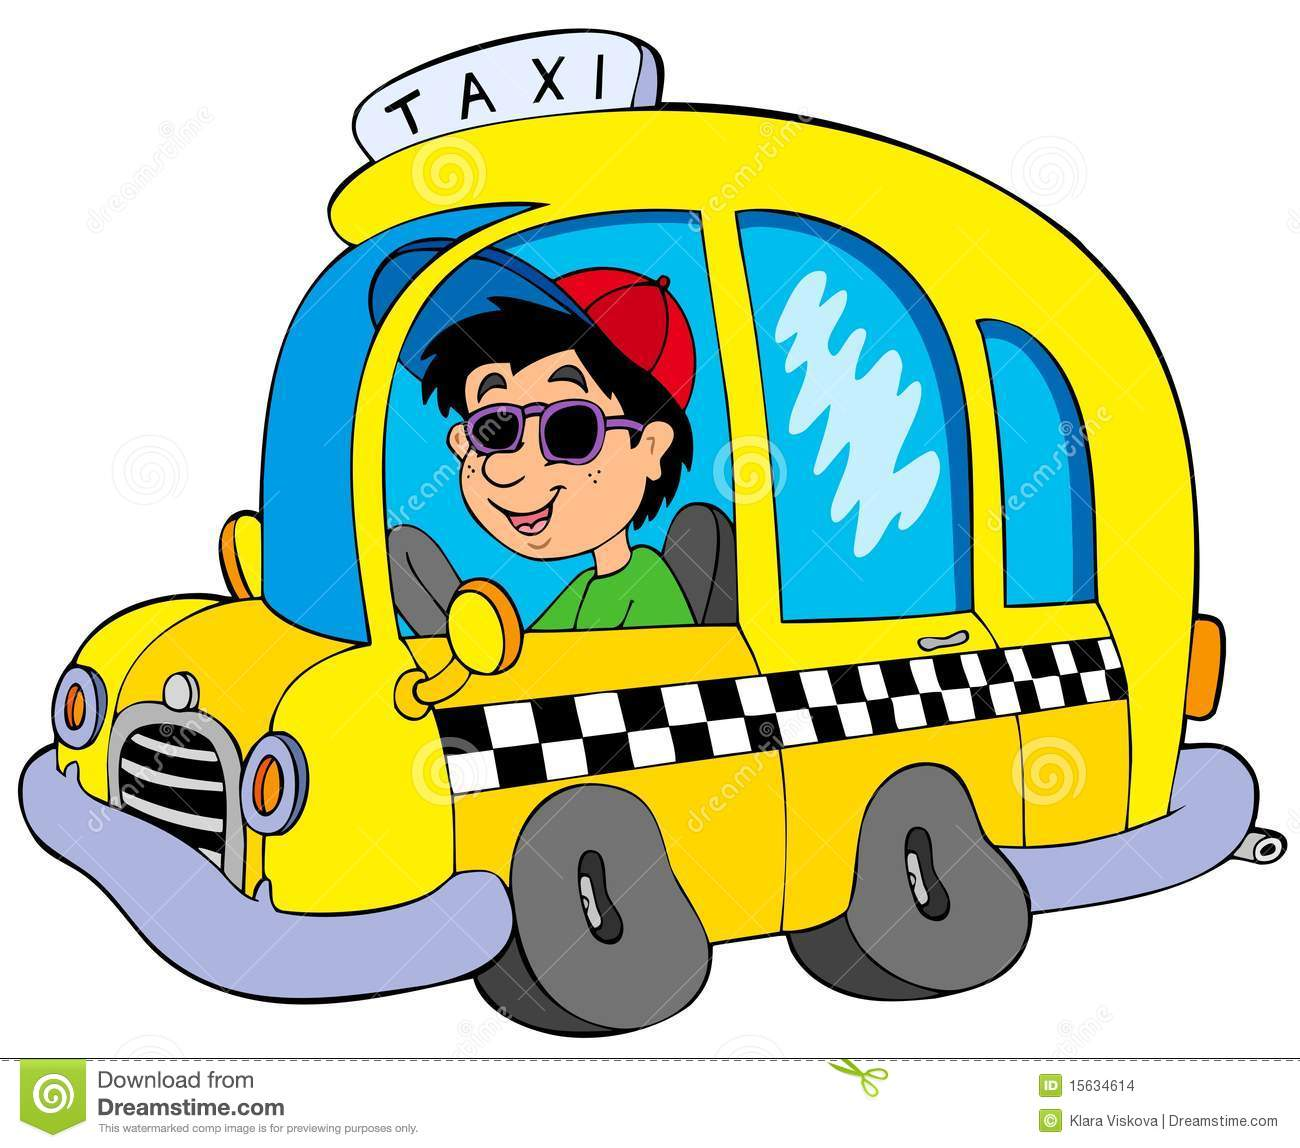 Cartoon Taxi Driver Stock Images - Image: 15634614: www.dreamstime.com/stock-images-cartoon-taxi-driver-image15634614